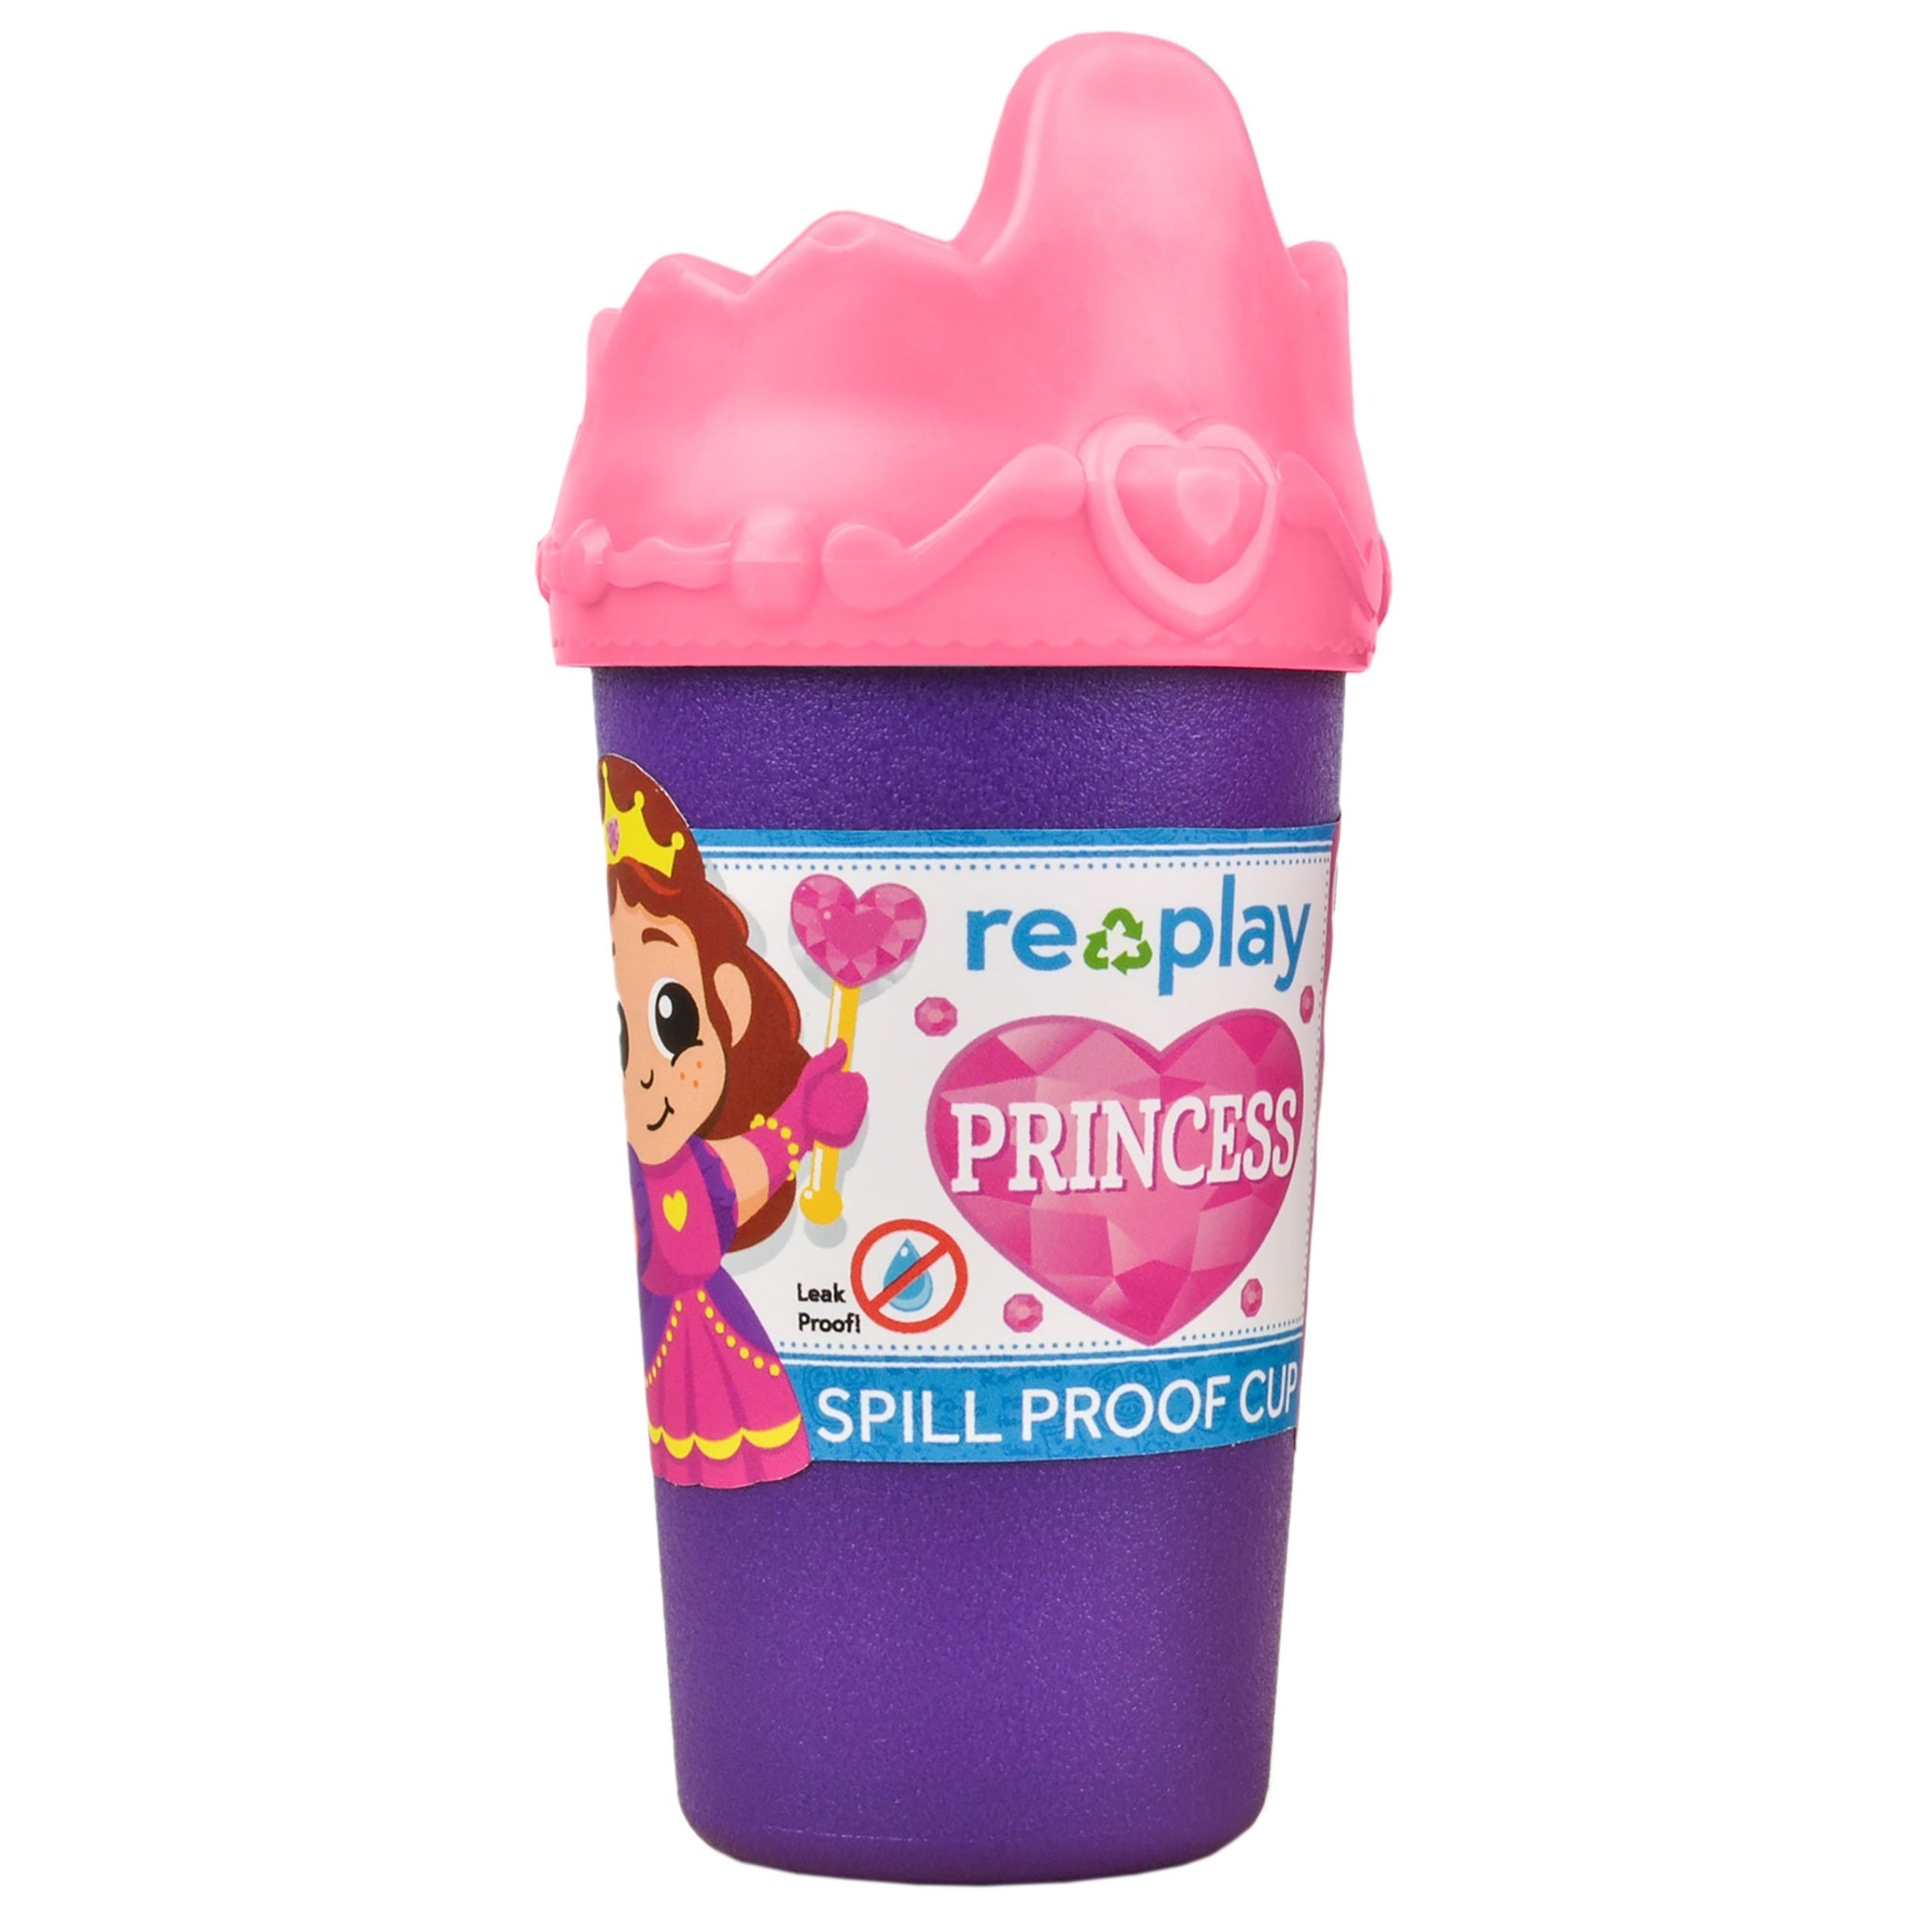 Replay Princess Sippy Cup Replay Dinnerware at Little Earth Nest Eco Shop